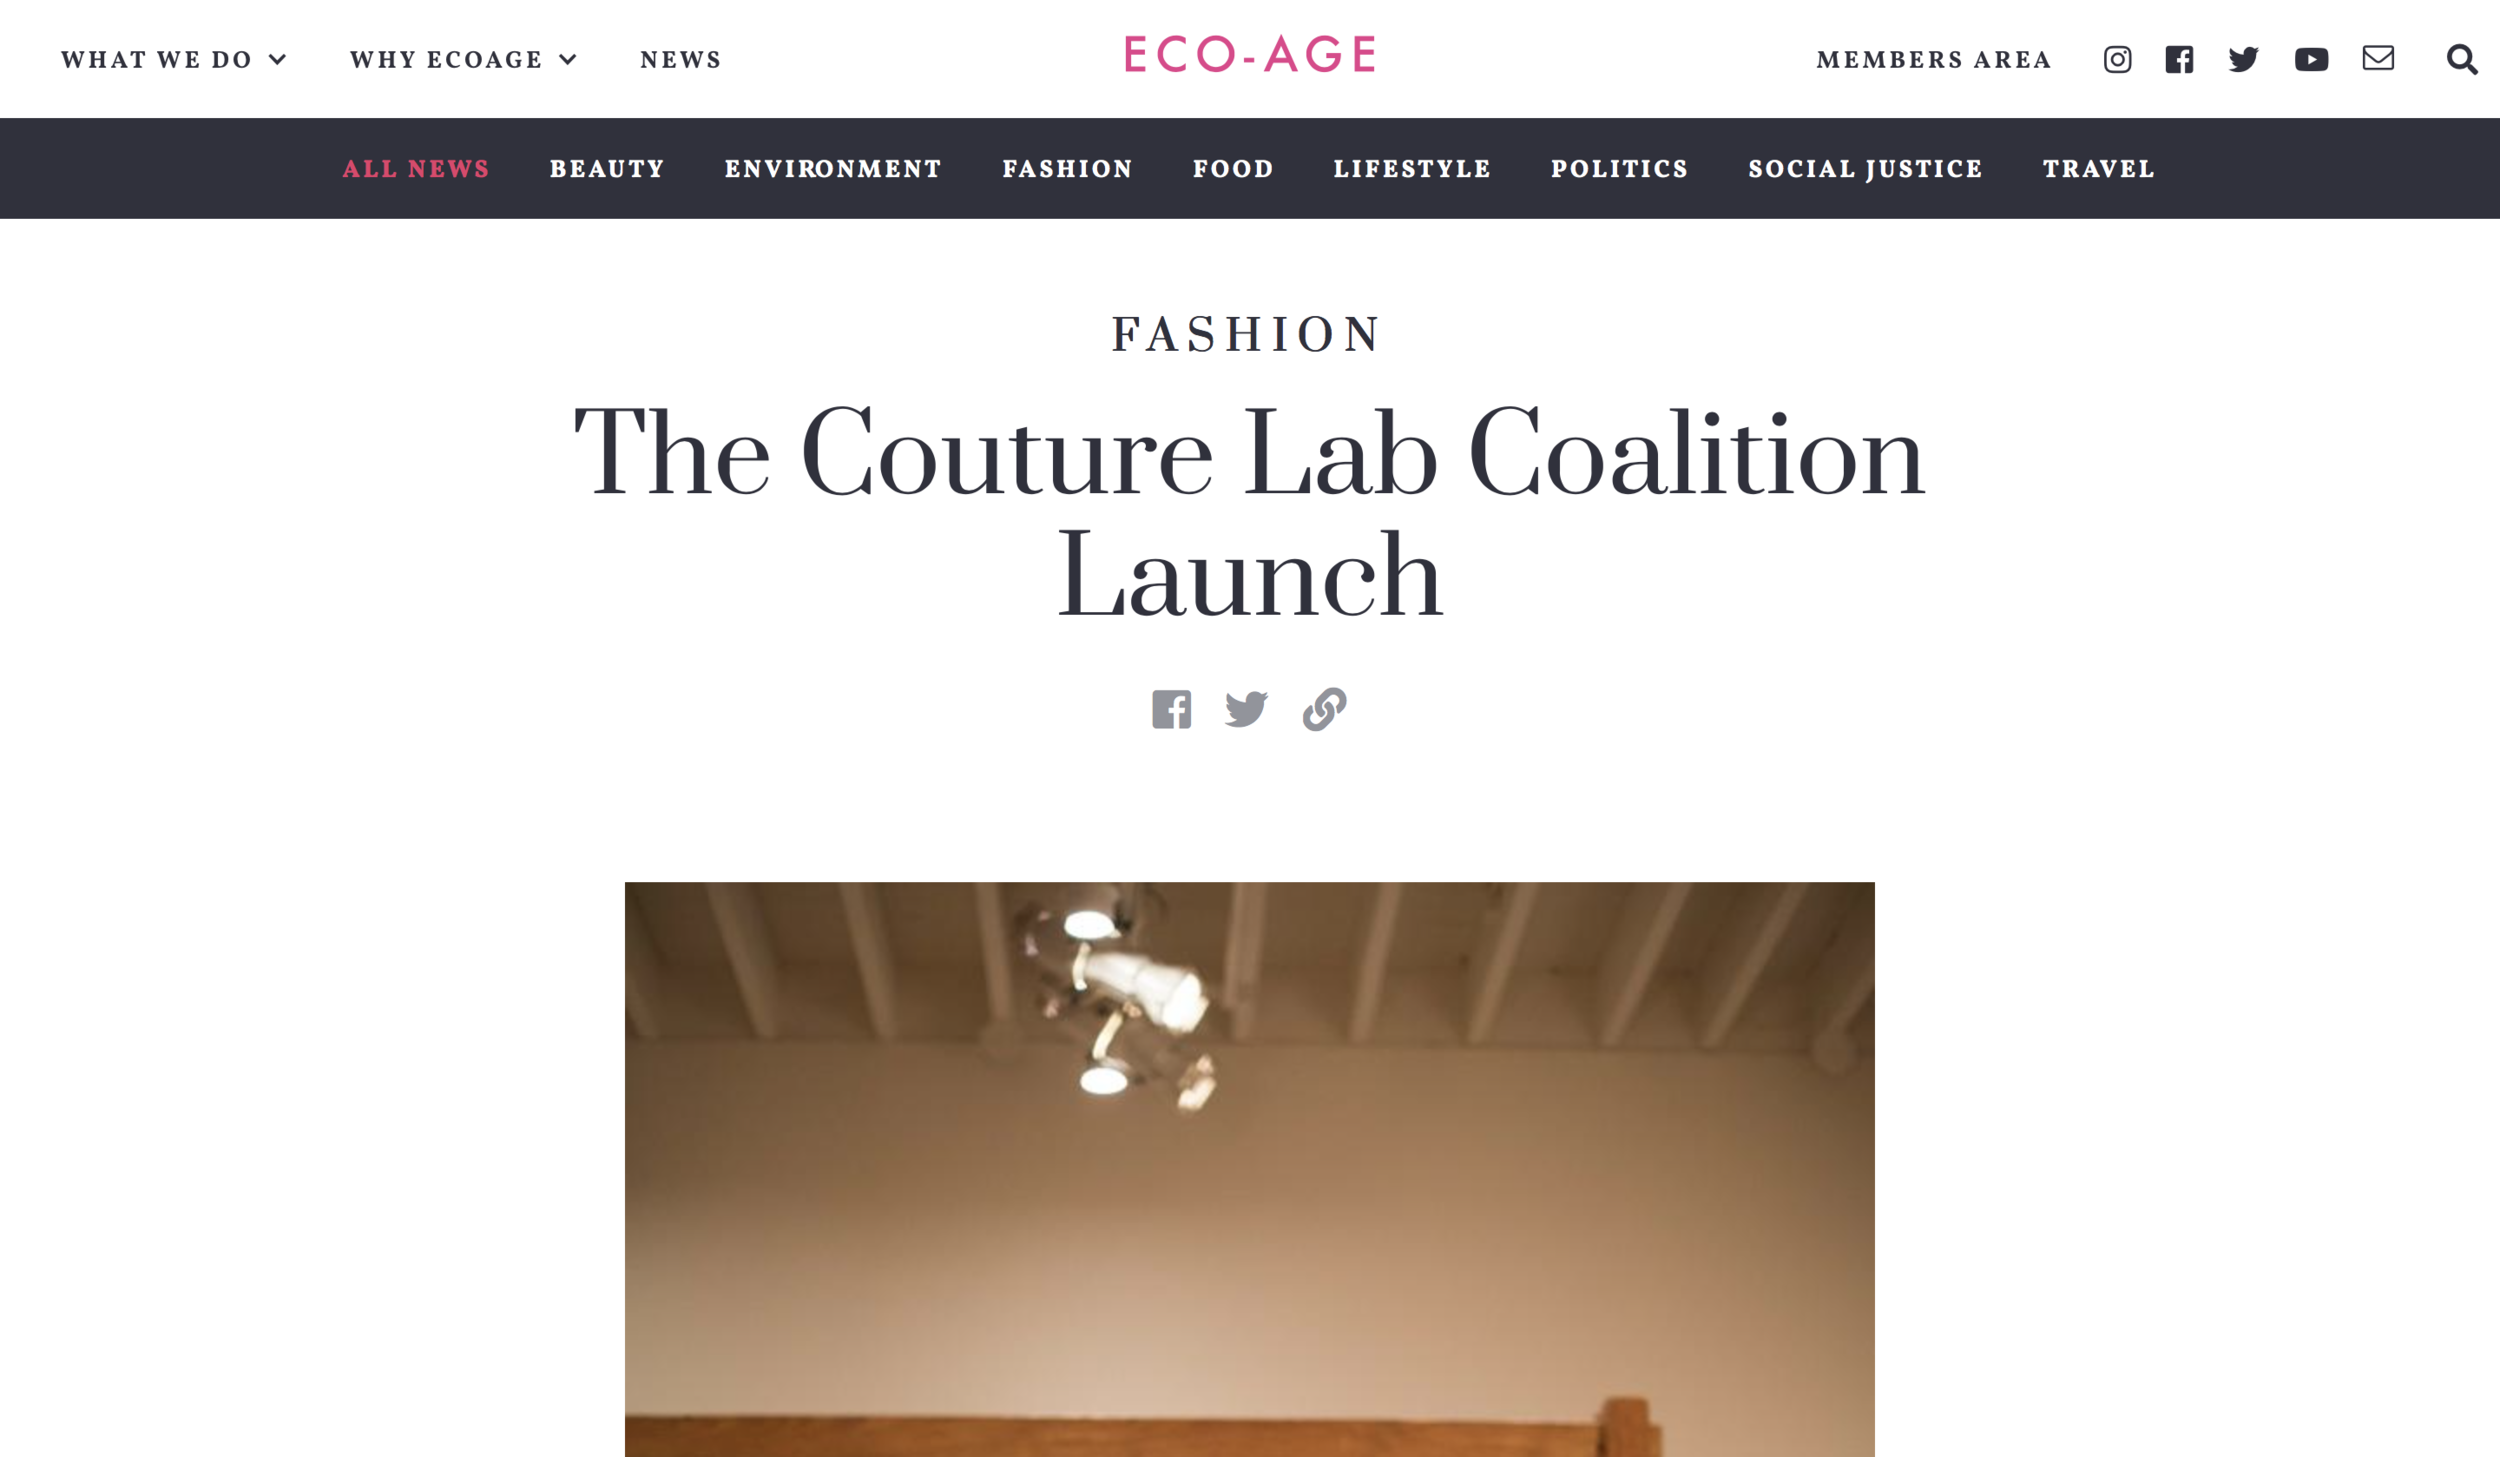 - The Couture Lab Coalition Launch(ECO Age)https://eco-age.com/news/couture-lab-coalition-launch